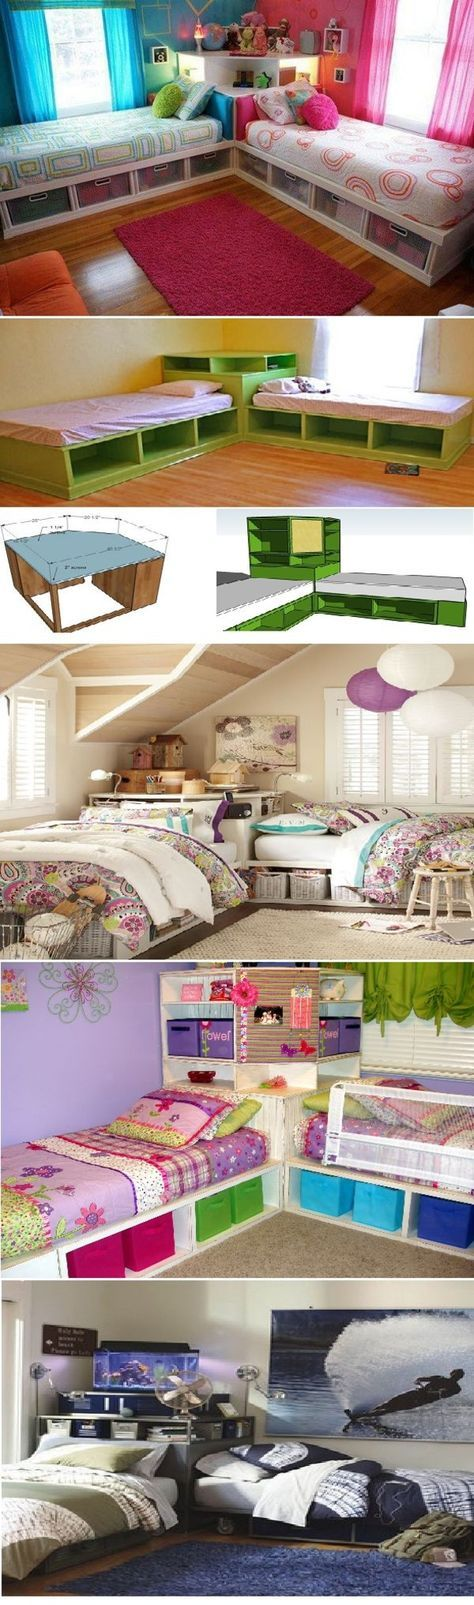 Best Shared Rooms Ideas On Pinterest Shared Bedrooms Shared - Creative furniture kids functional pink flowers hearts decorations girl room design